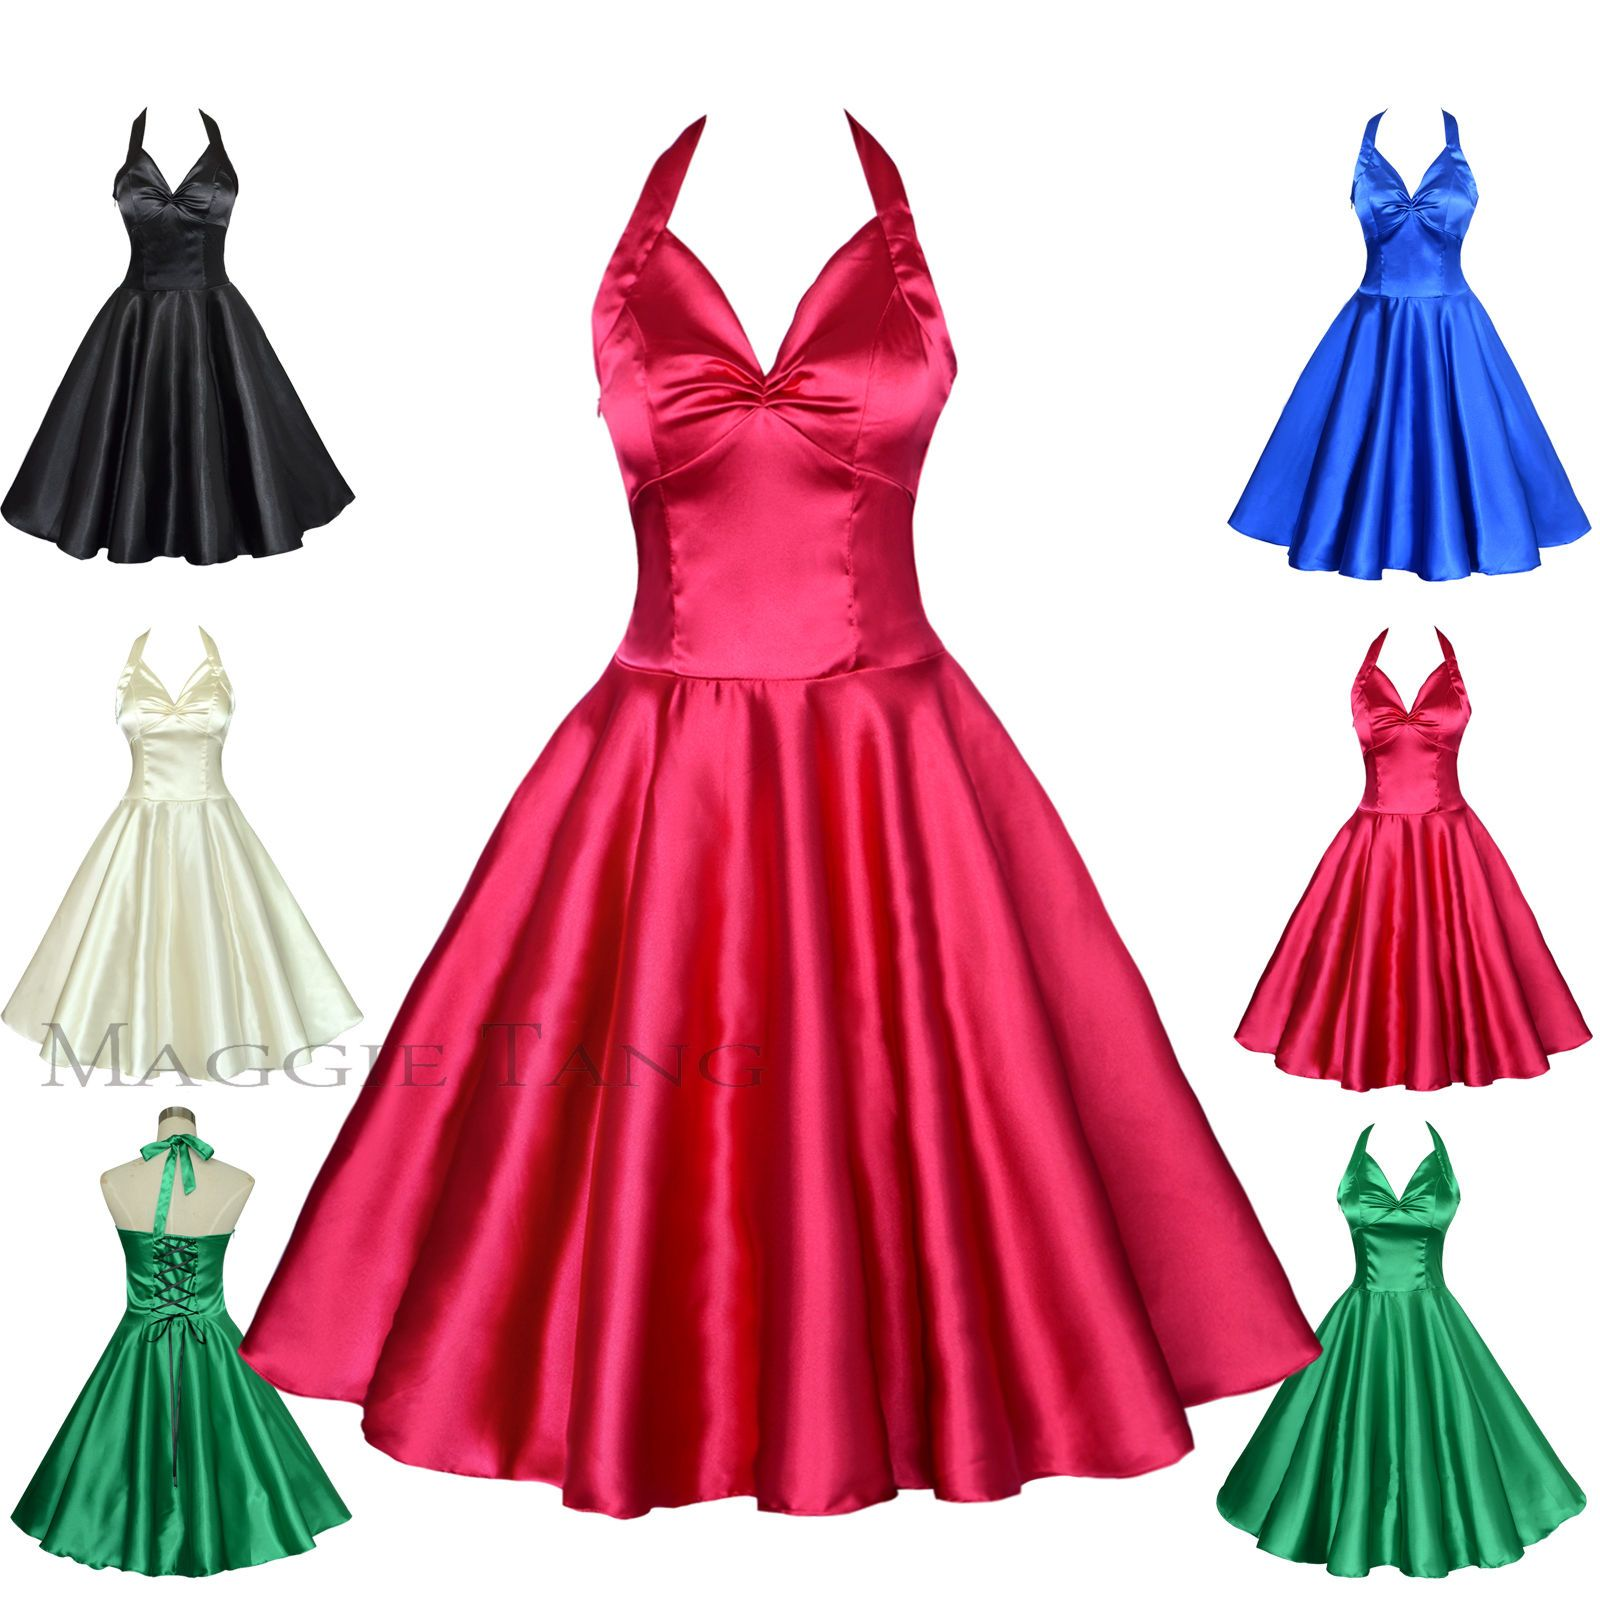 55fc56124c26 Maggie Tang 50S Satin Vtg Retro Rockabilly Pinup Party Swing Dress S-501